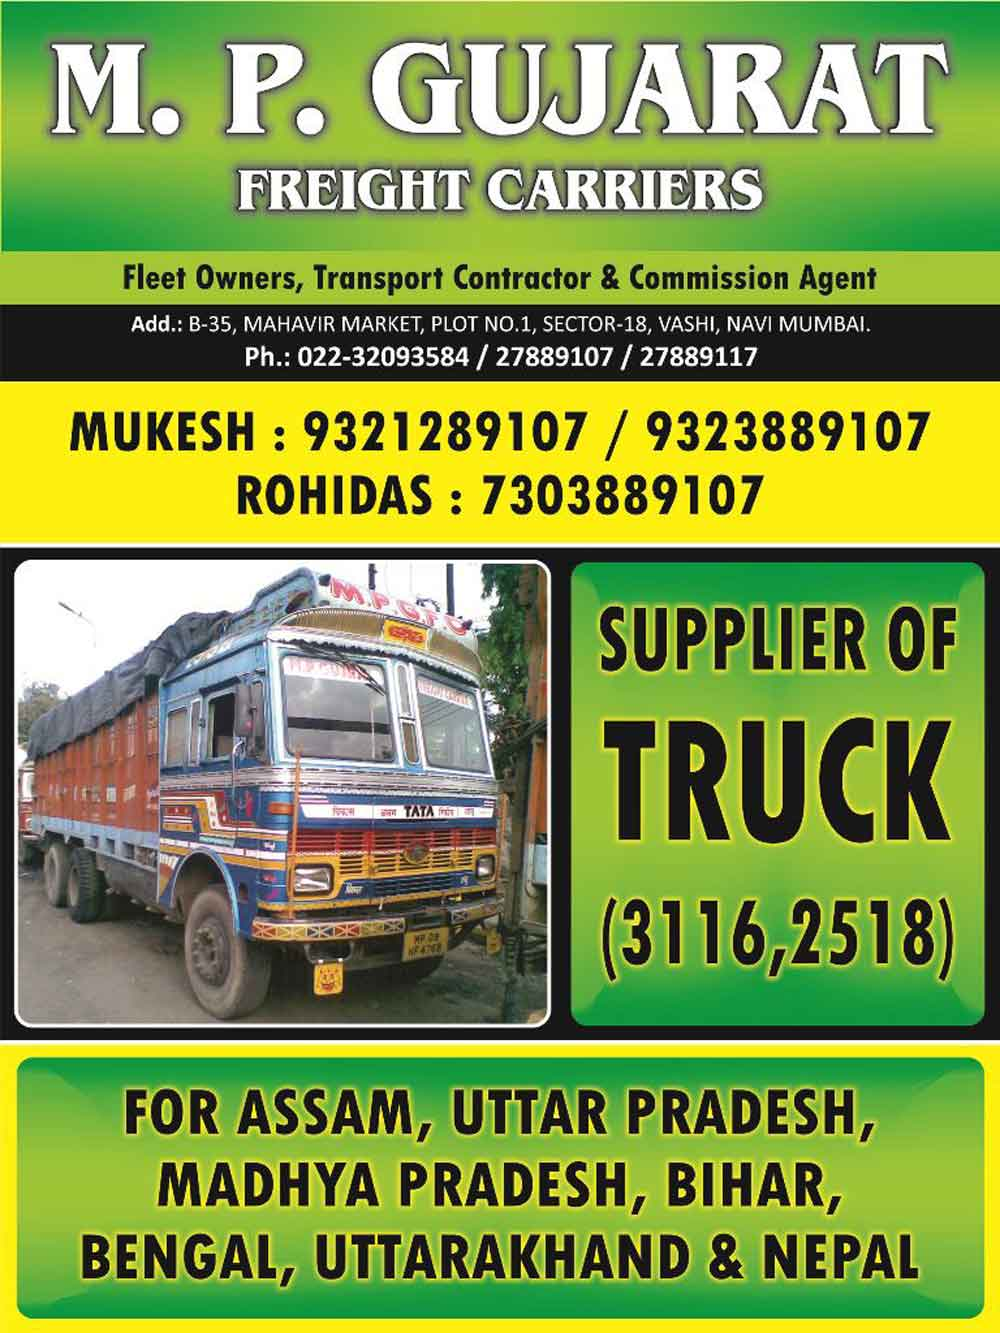 M P Gujarat Freight Carriers